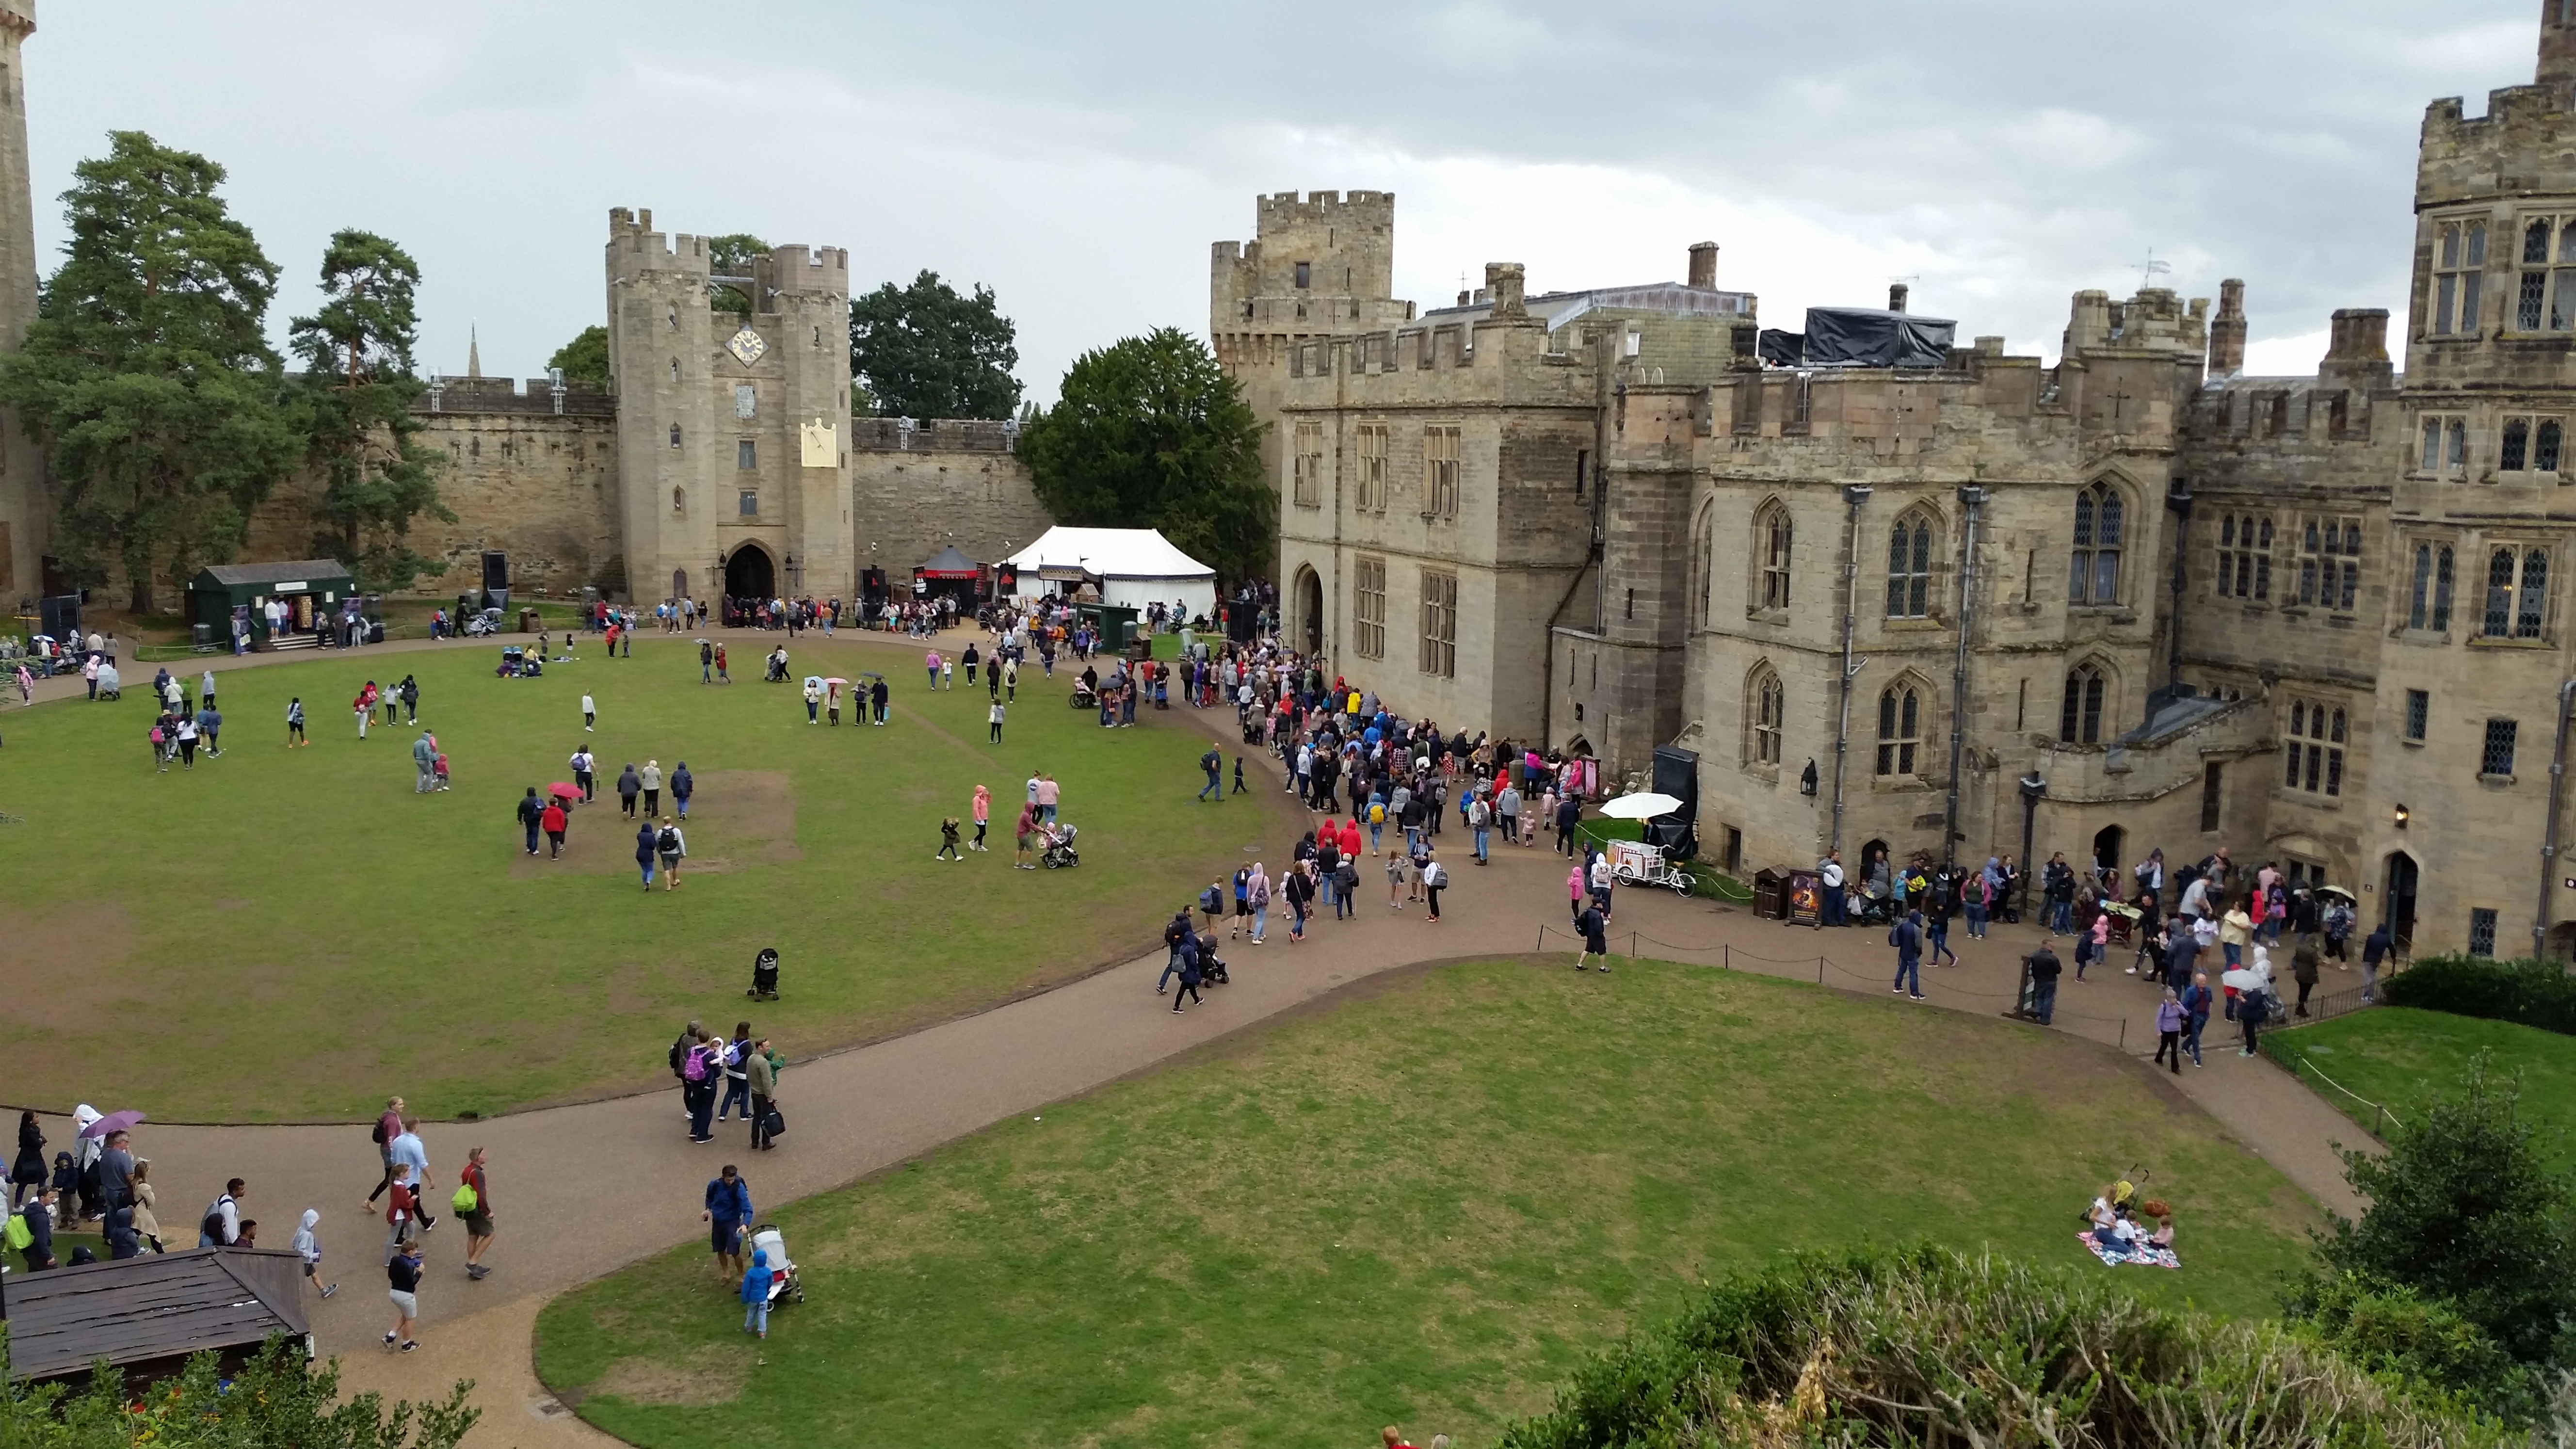 view of the castle courtyard from one of the state rooms at Warwick Castle